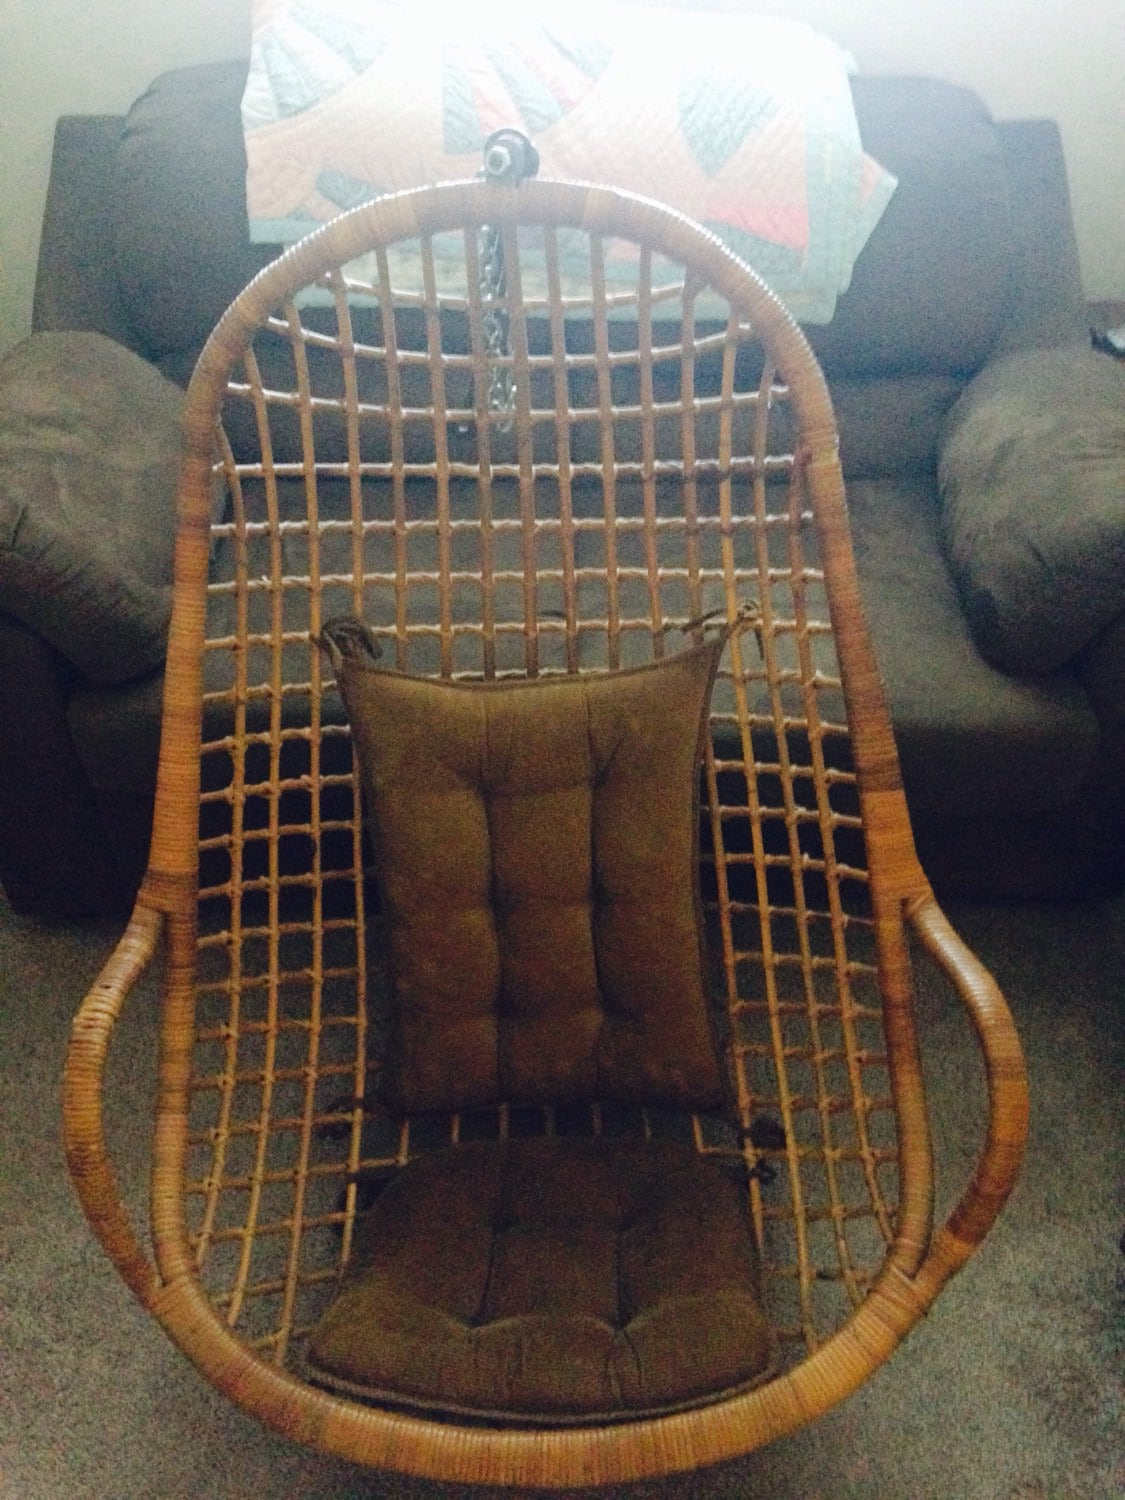 Egg Shaped Wicker Chair Mid Century Modern Rattan Wicker Egg Shaped Chair Hanging